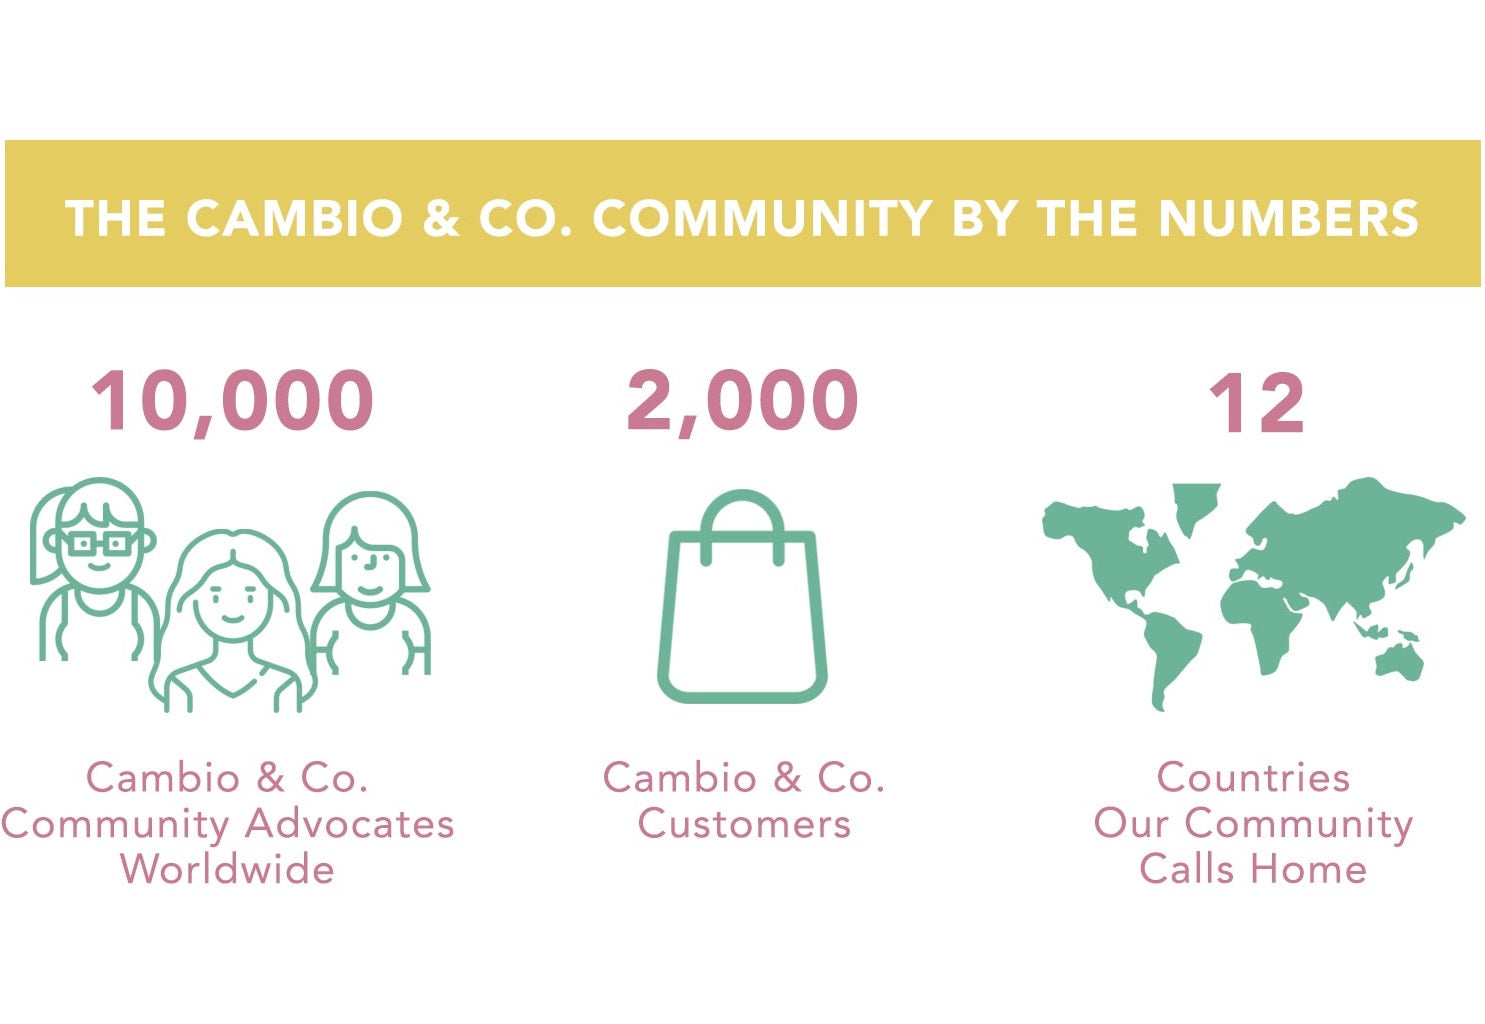 Infographic of the Cambio & Co. community by the numbers: 10000 Cambio community advocates around the world, 2000 customers worldwide, and 12 countries our customers call home.